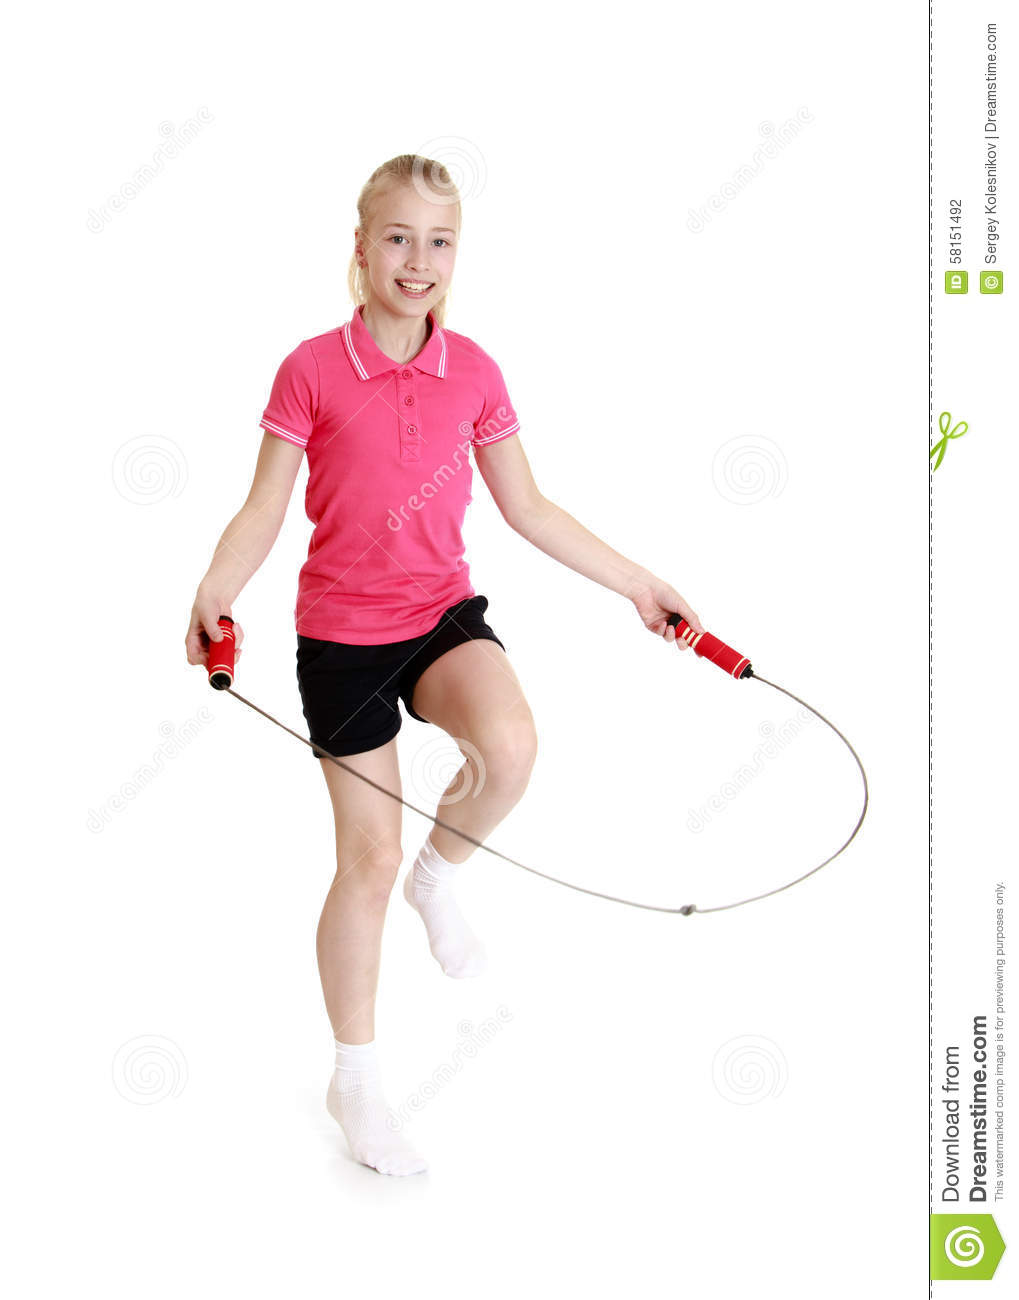 Girl jumping skipping rope stock photo. Image of people ...